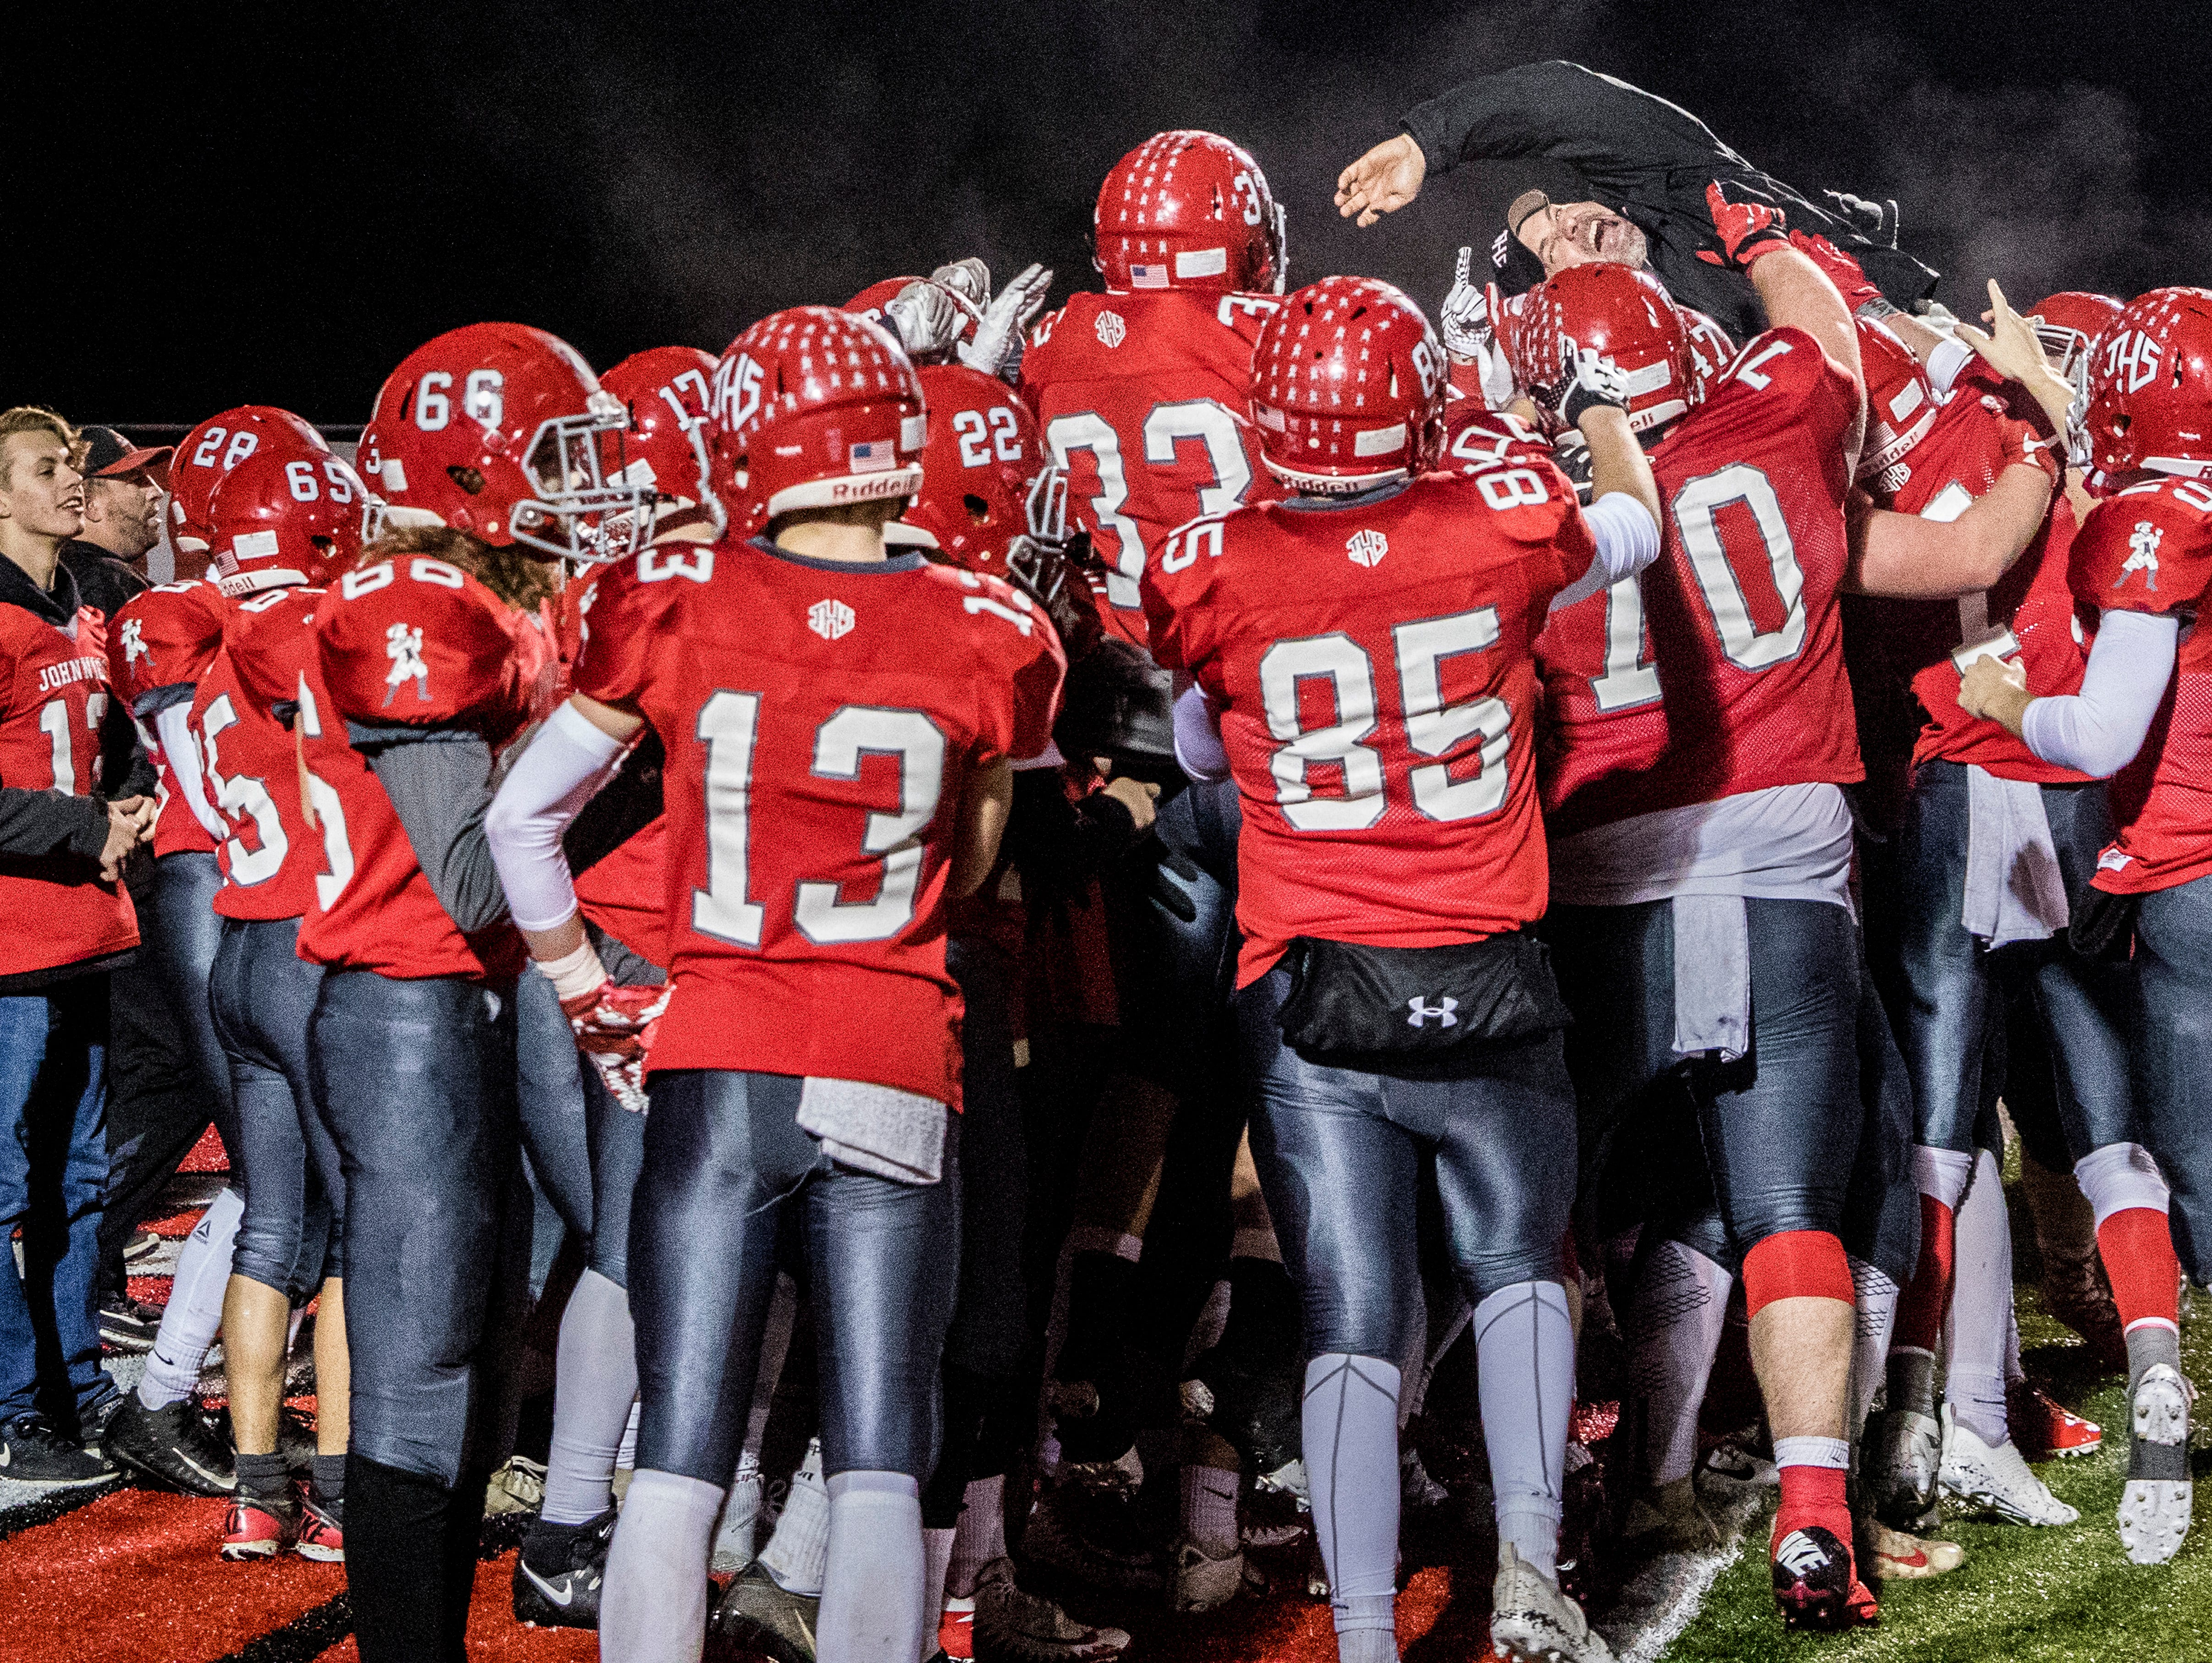 Coach Mike Carter bodysurfs with his team after making a charging jump Saturday night in Jackson, Ohio, after winning against Wheelersburg 32-14 in a Division V state semifinal.